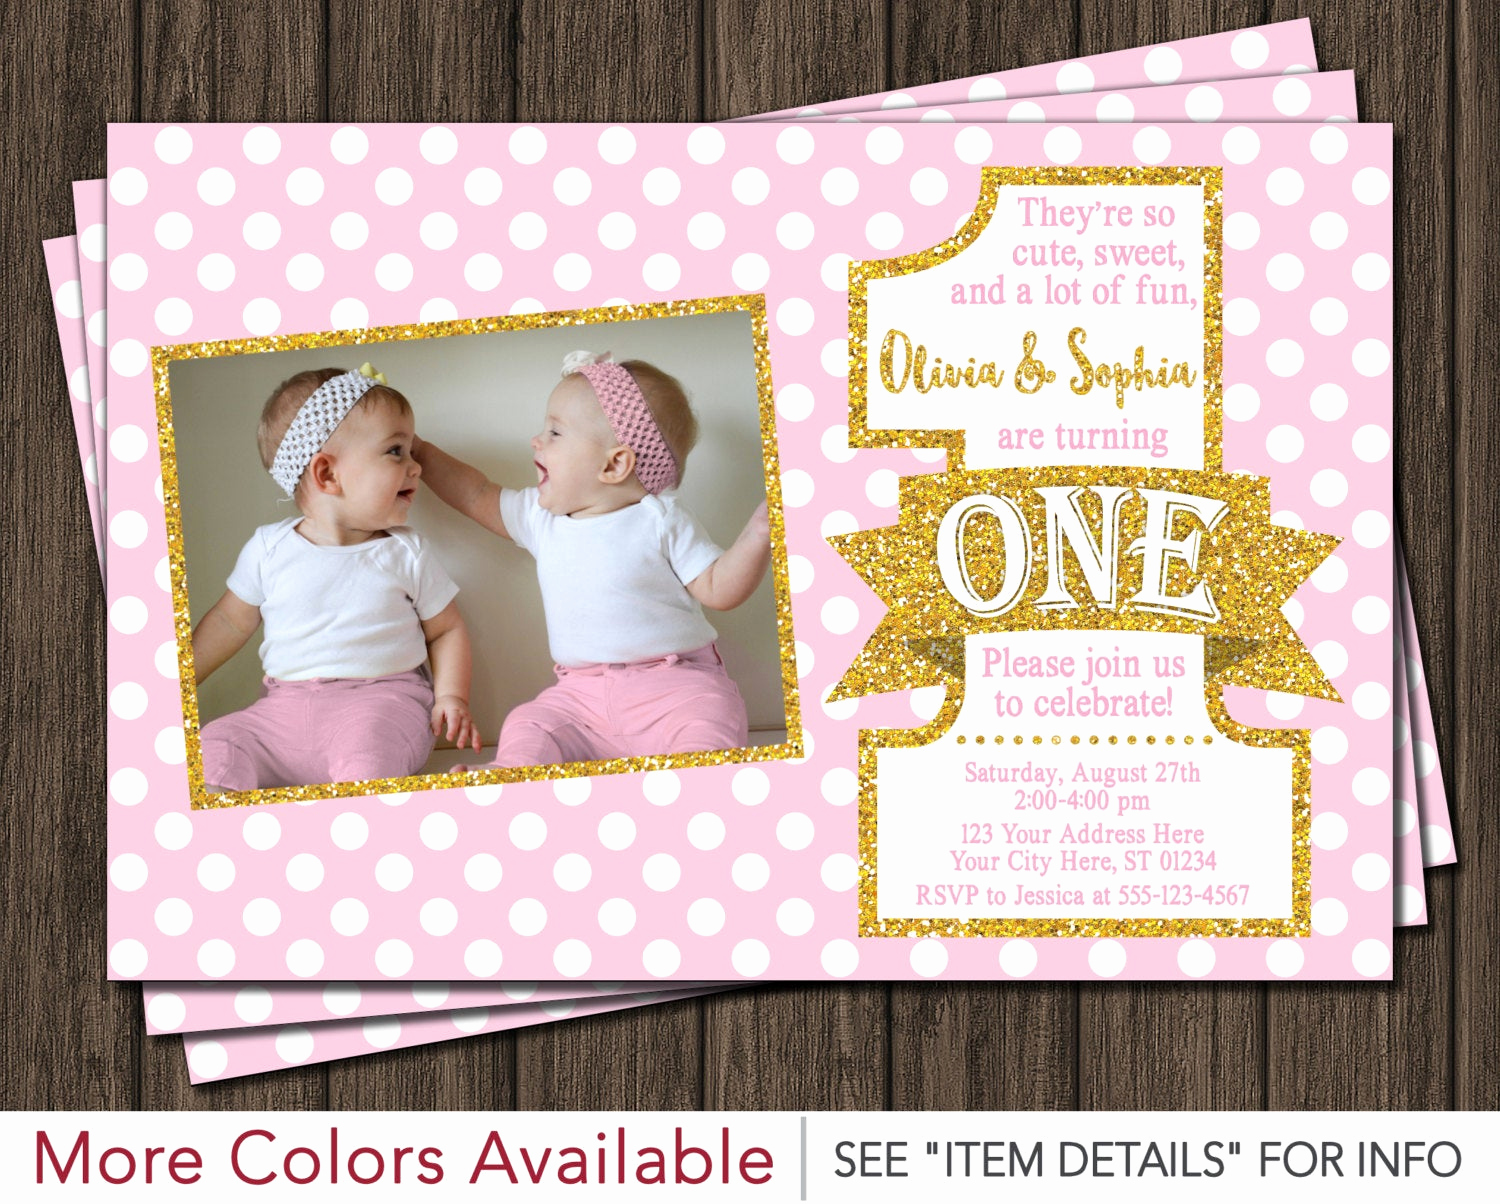 Pink and Gold Birthday Invitation Beautiful Twin Birthday Invitation Pink and Gold First Birthday